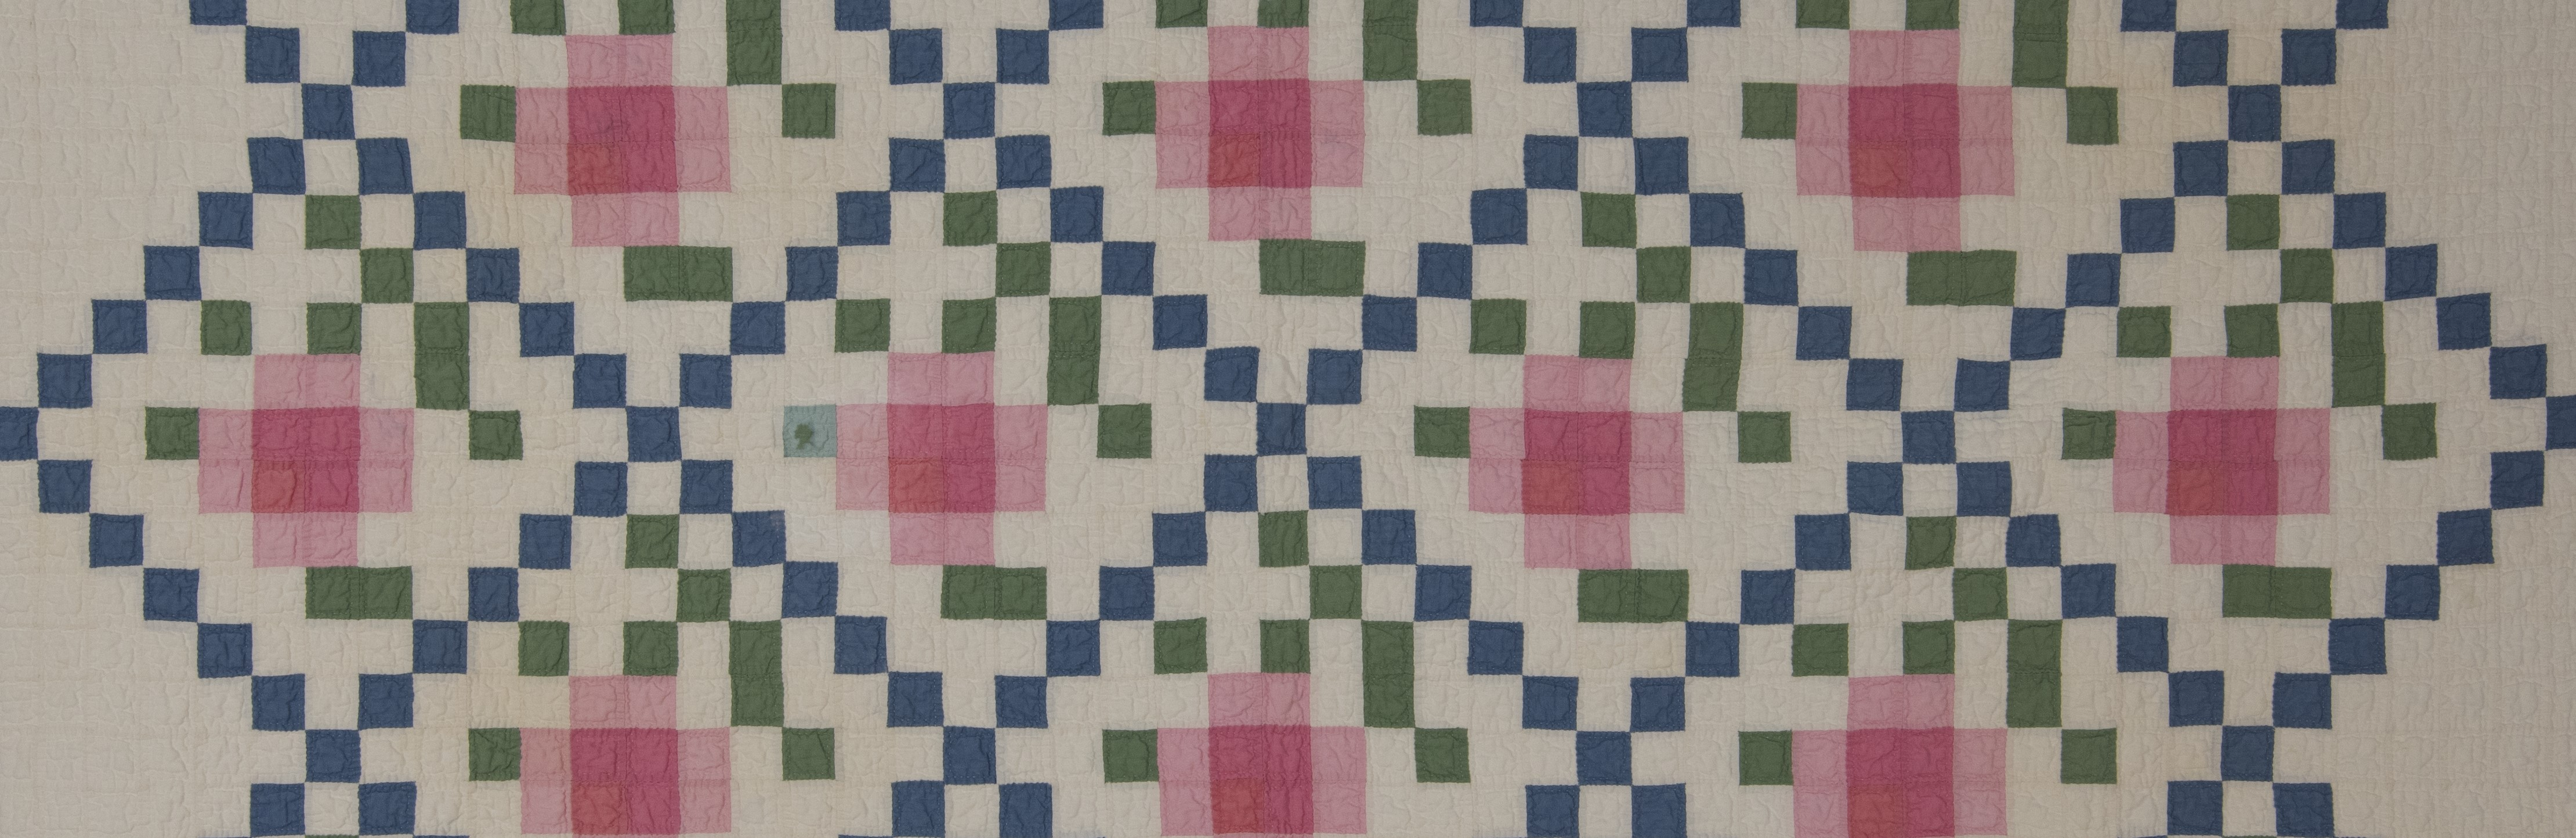 Kim J. Texas quilt blue diags